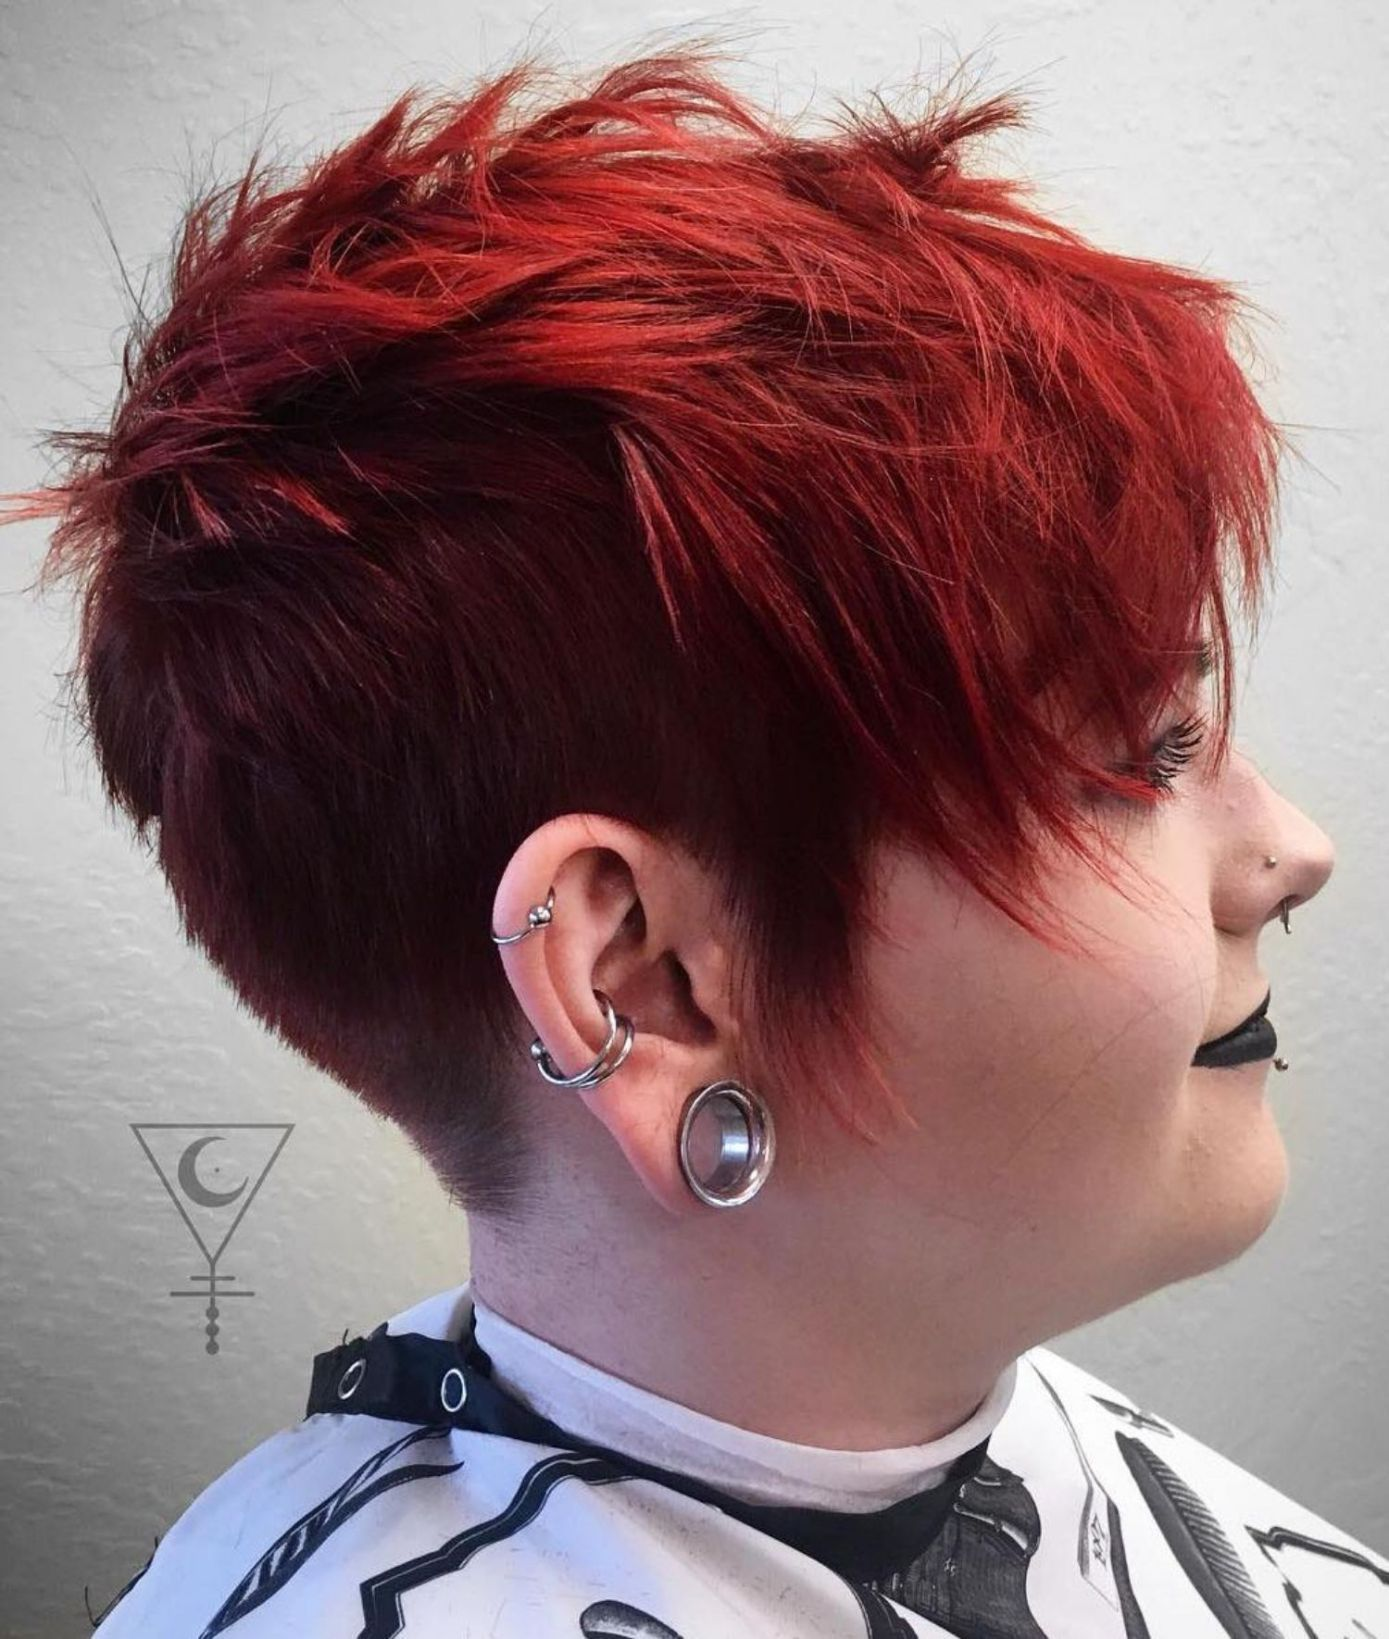 Top 60 Flattering Hairstyles For Round Faces Hairstyles For Round Faces Short Hair Styles For Round Faces Edgy Short Hair